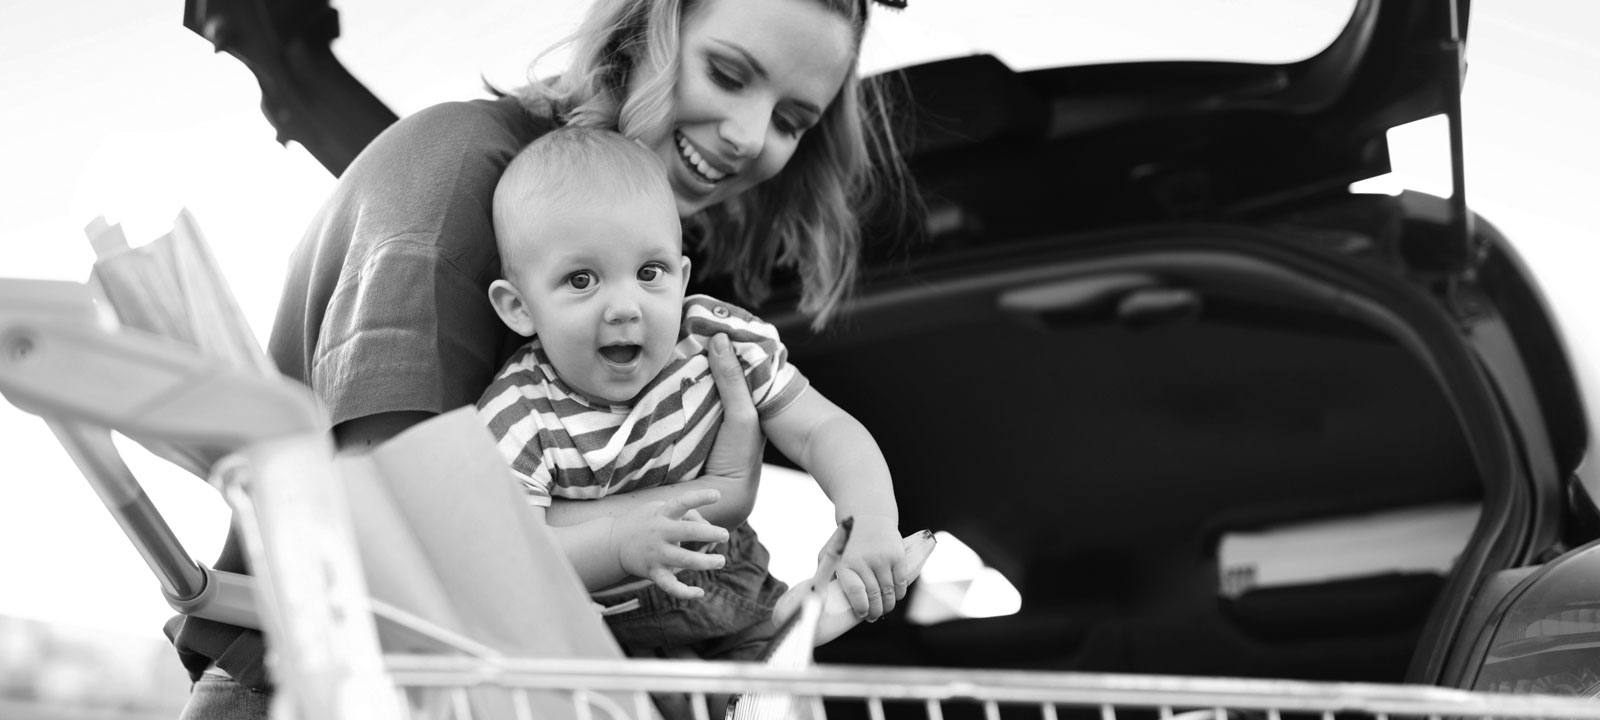 Mother and son loading groceries into car